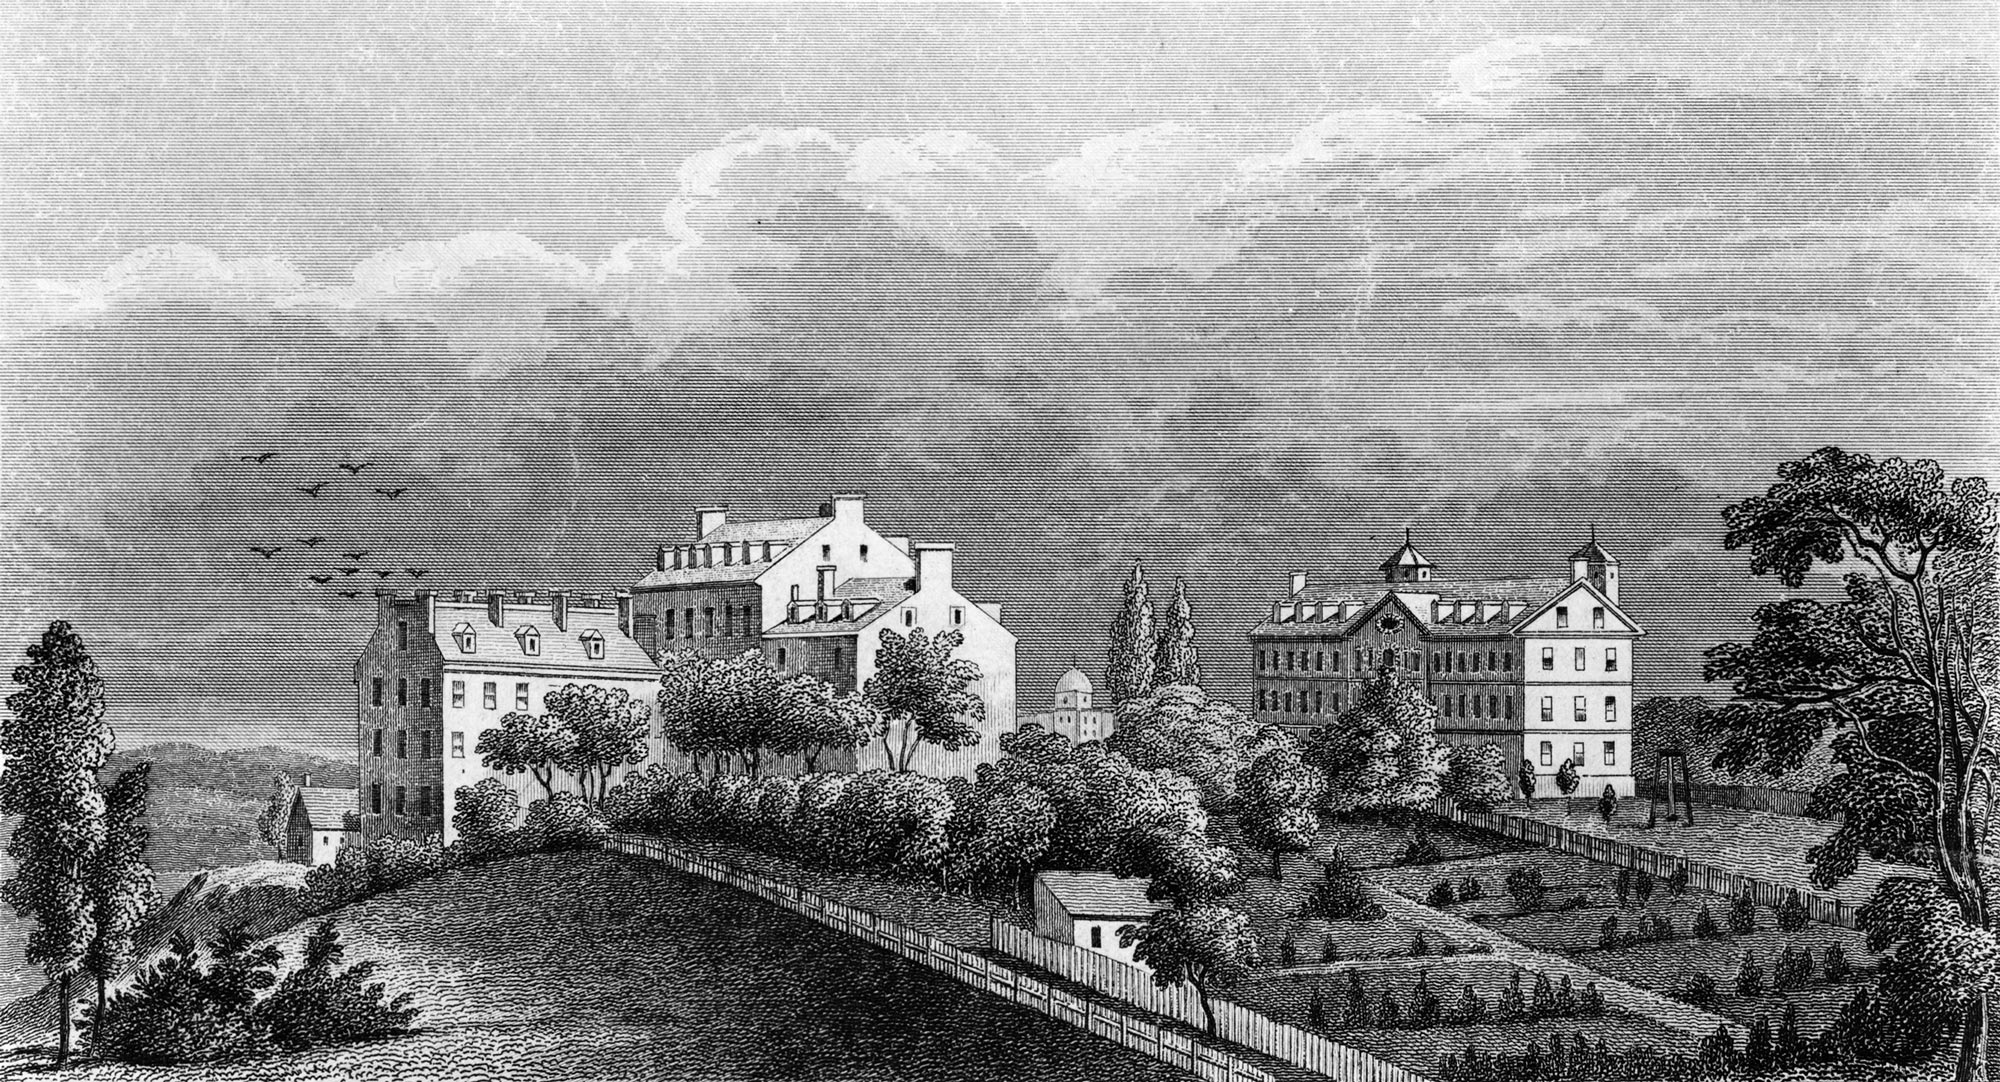 Georgetown University in the 19th century